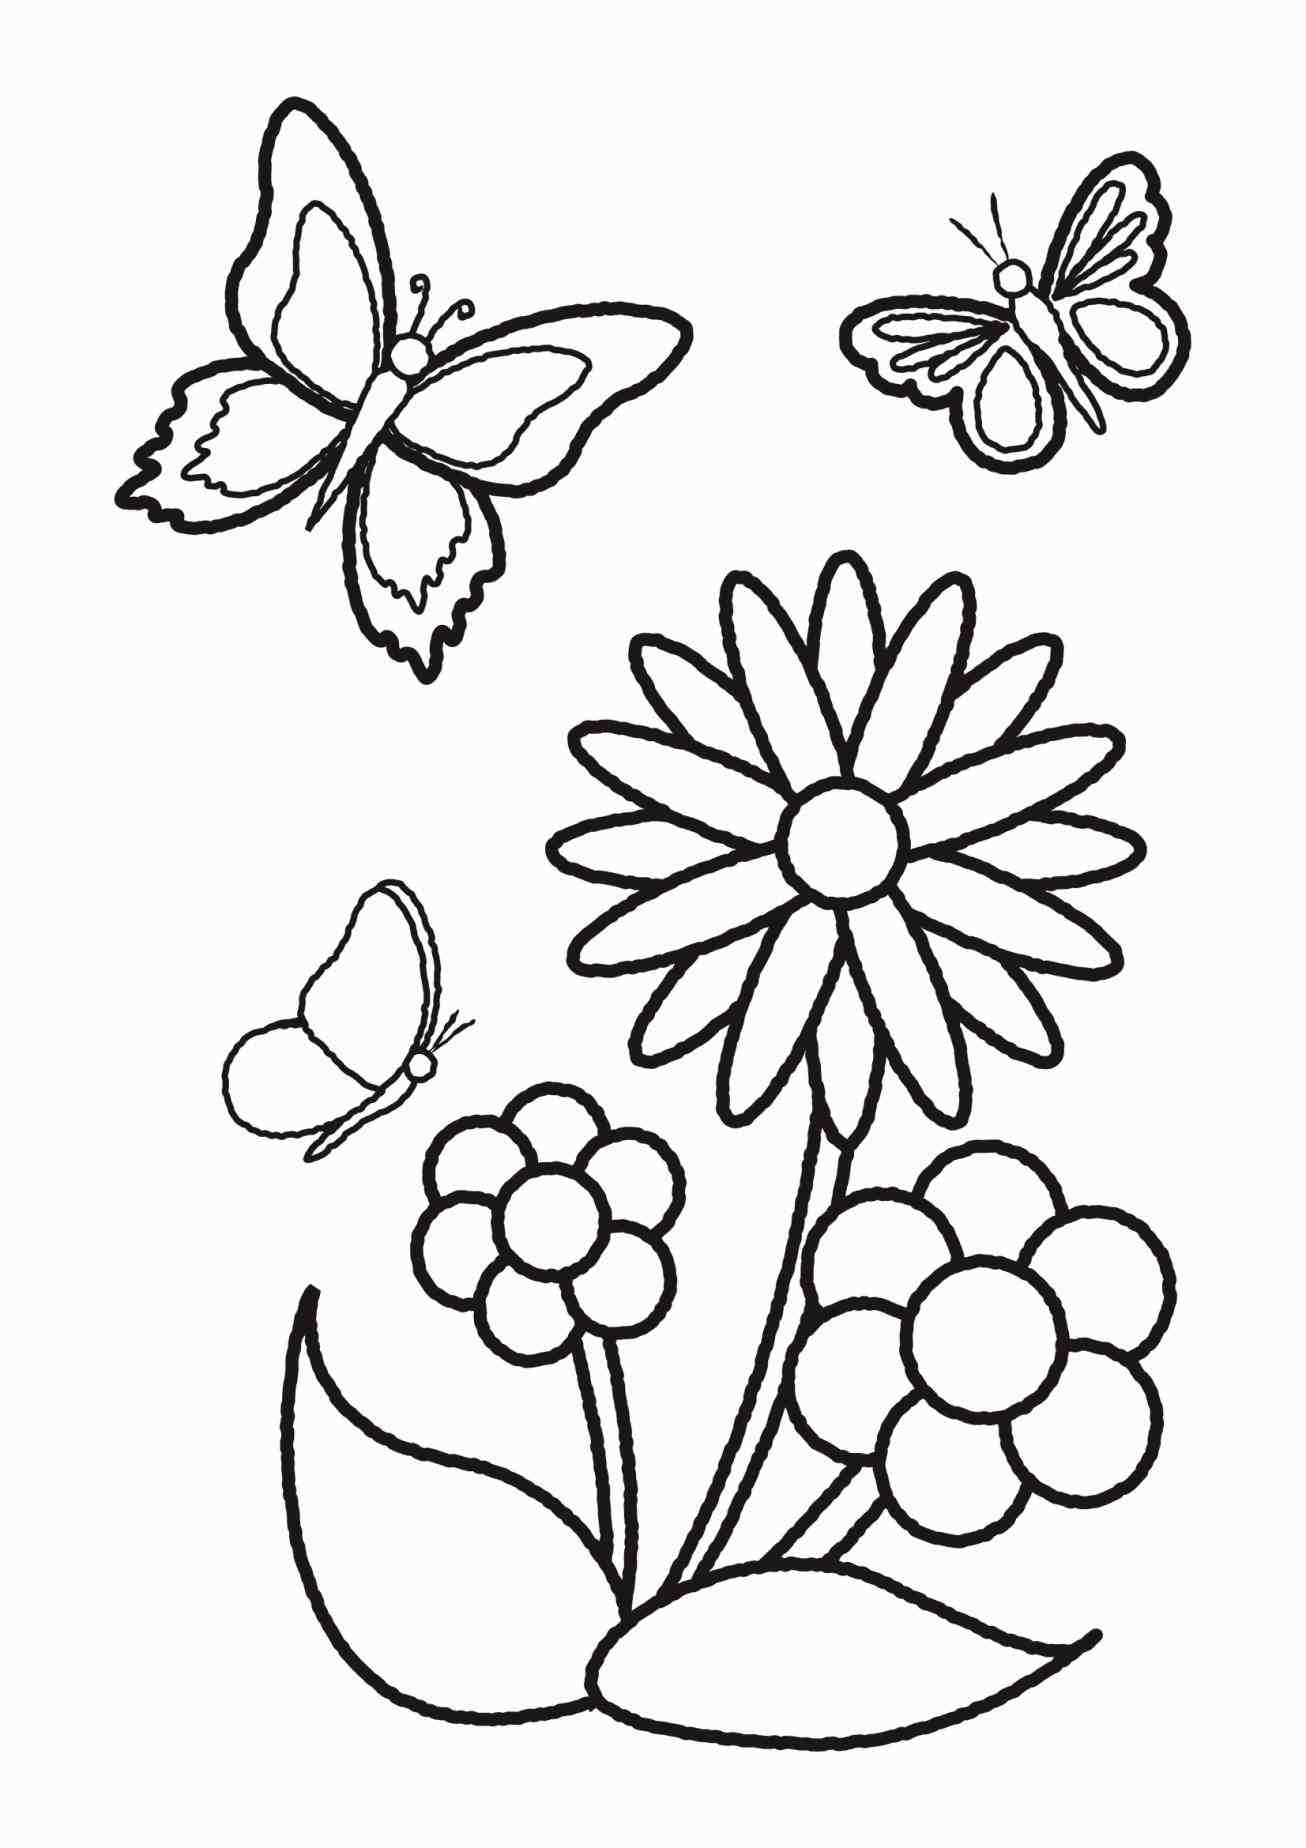 Easy Drawing Of Flowers At Getdrawings Com Free For Personal Use